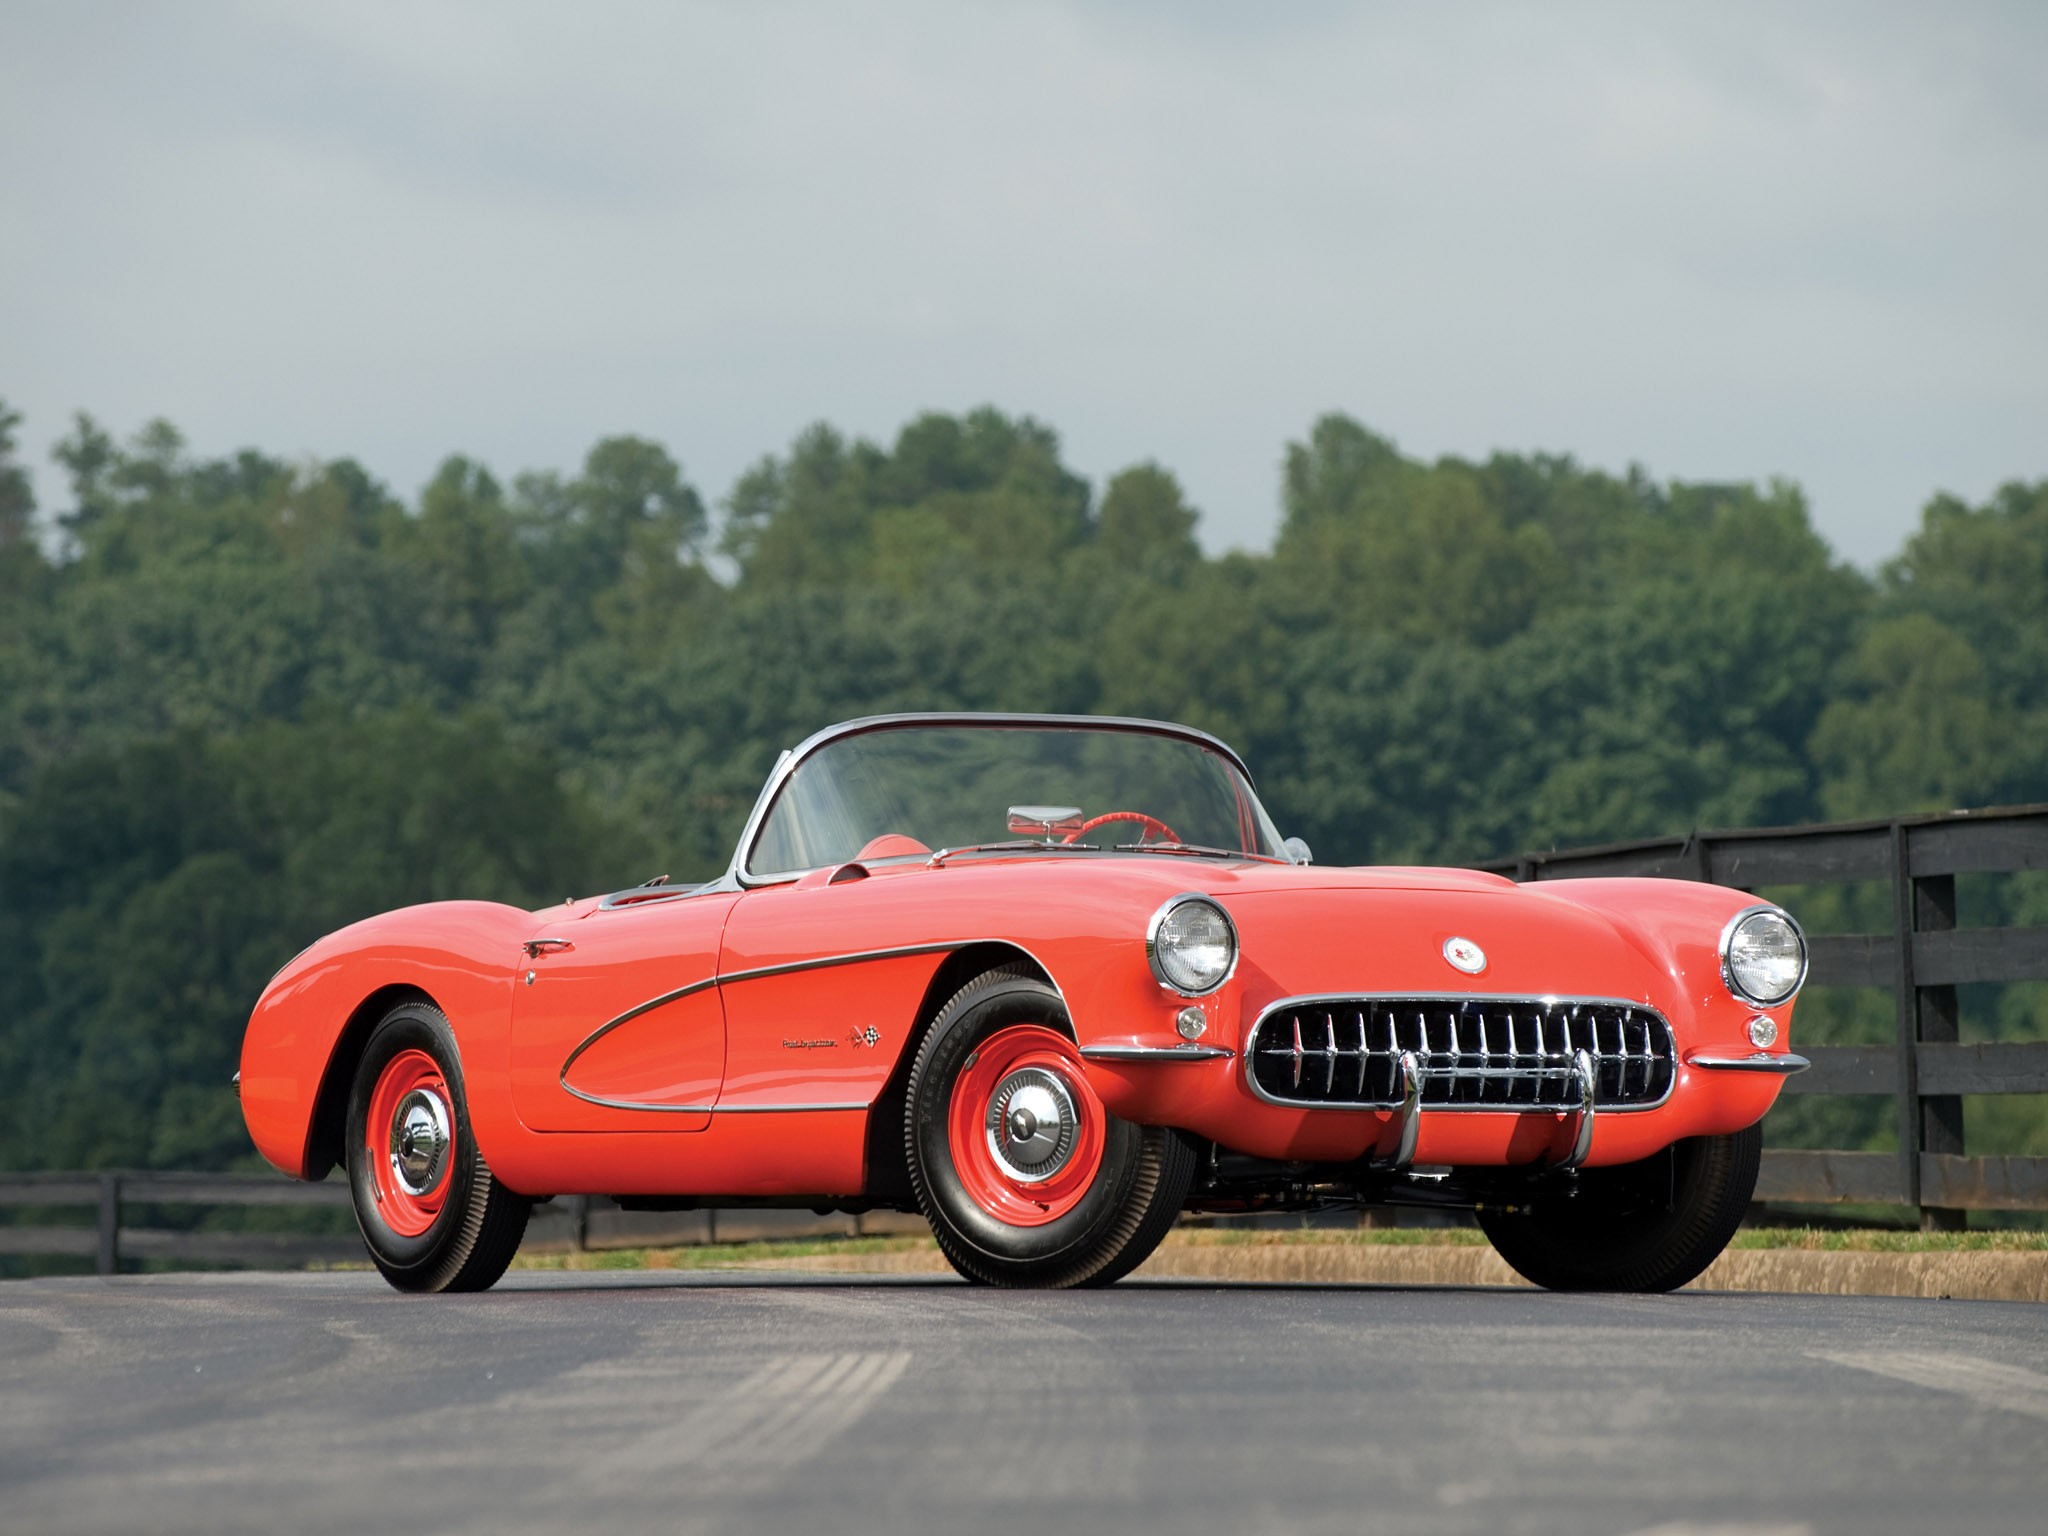 1957 Chevrolet Corvette C1 Airbox Copo Race Car